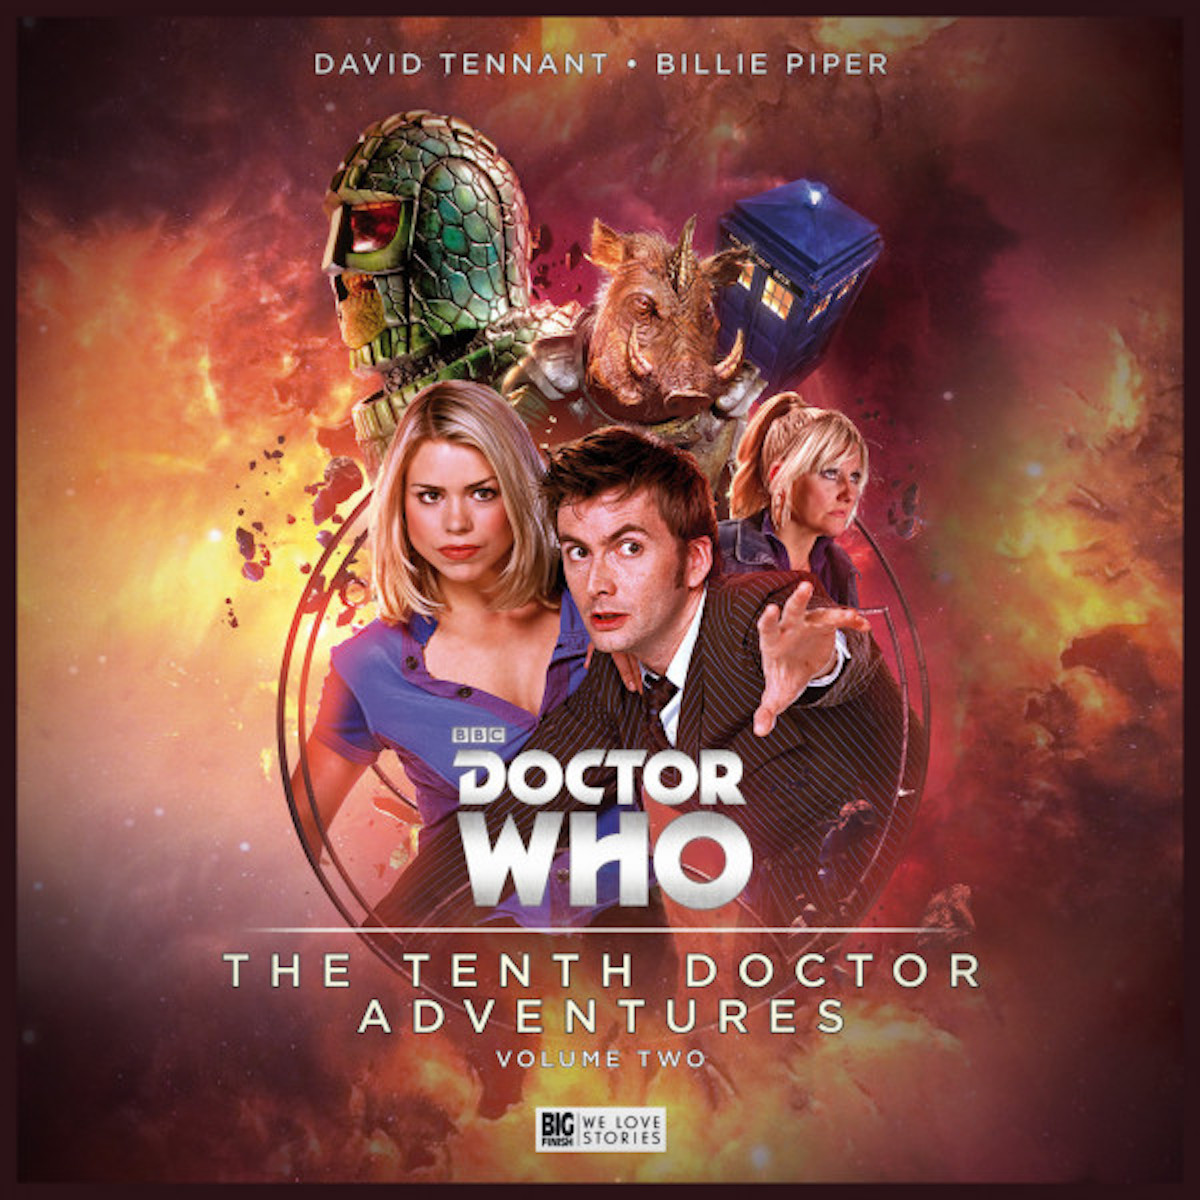 The Tenth Doctor Adventures Volume Two